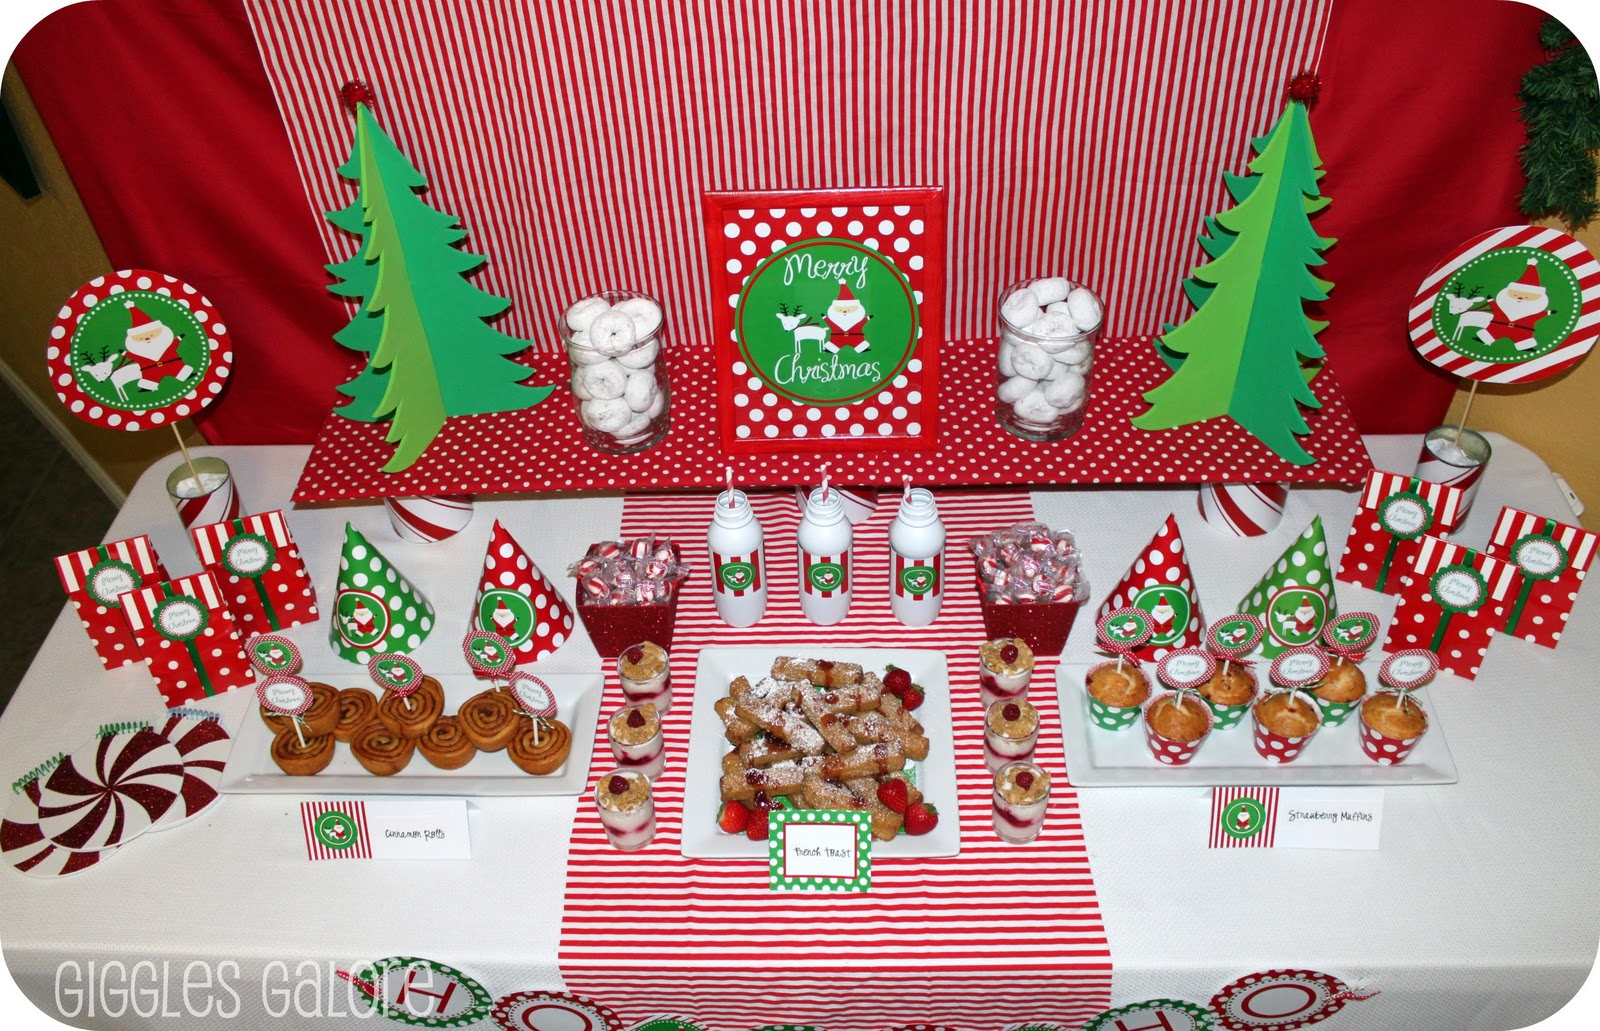 North Pole Breakfast 2011